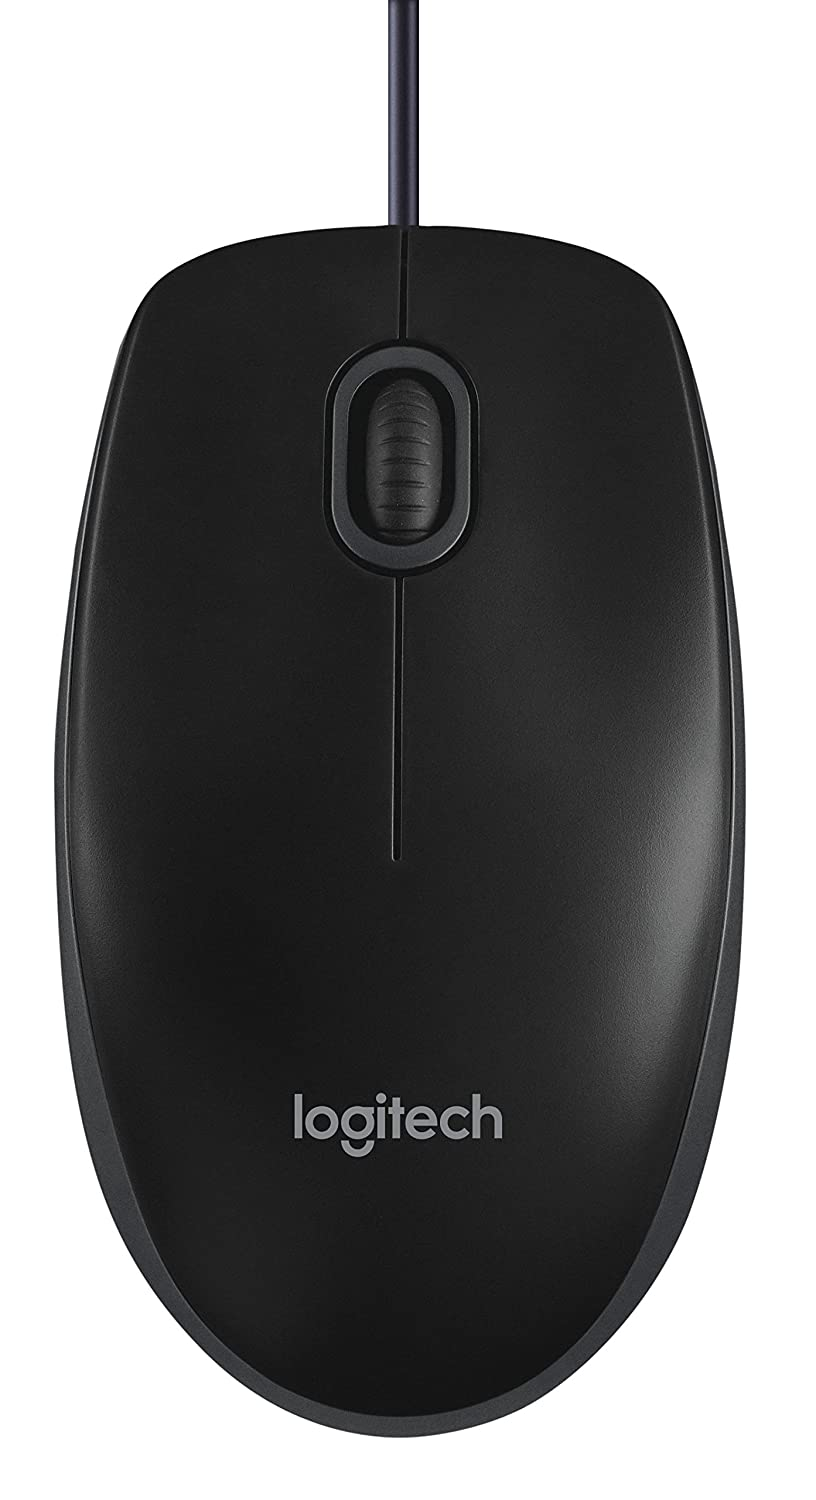 Logitech B100 Optical Mouse (Black)